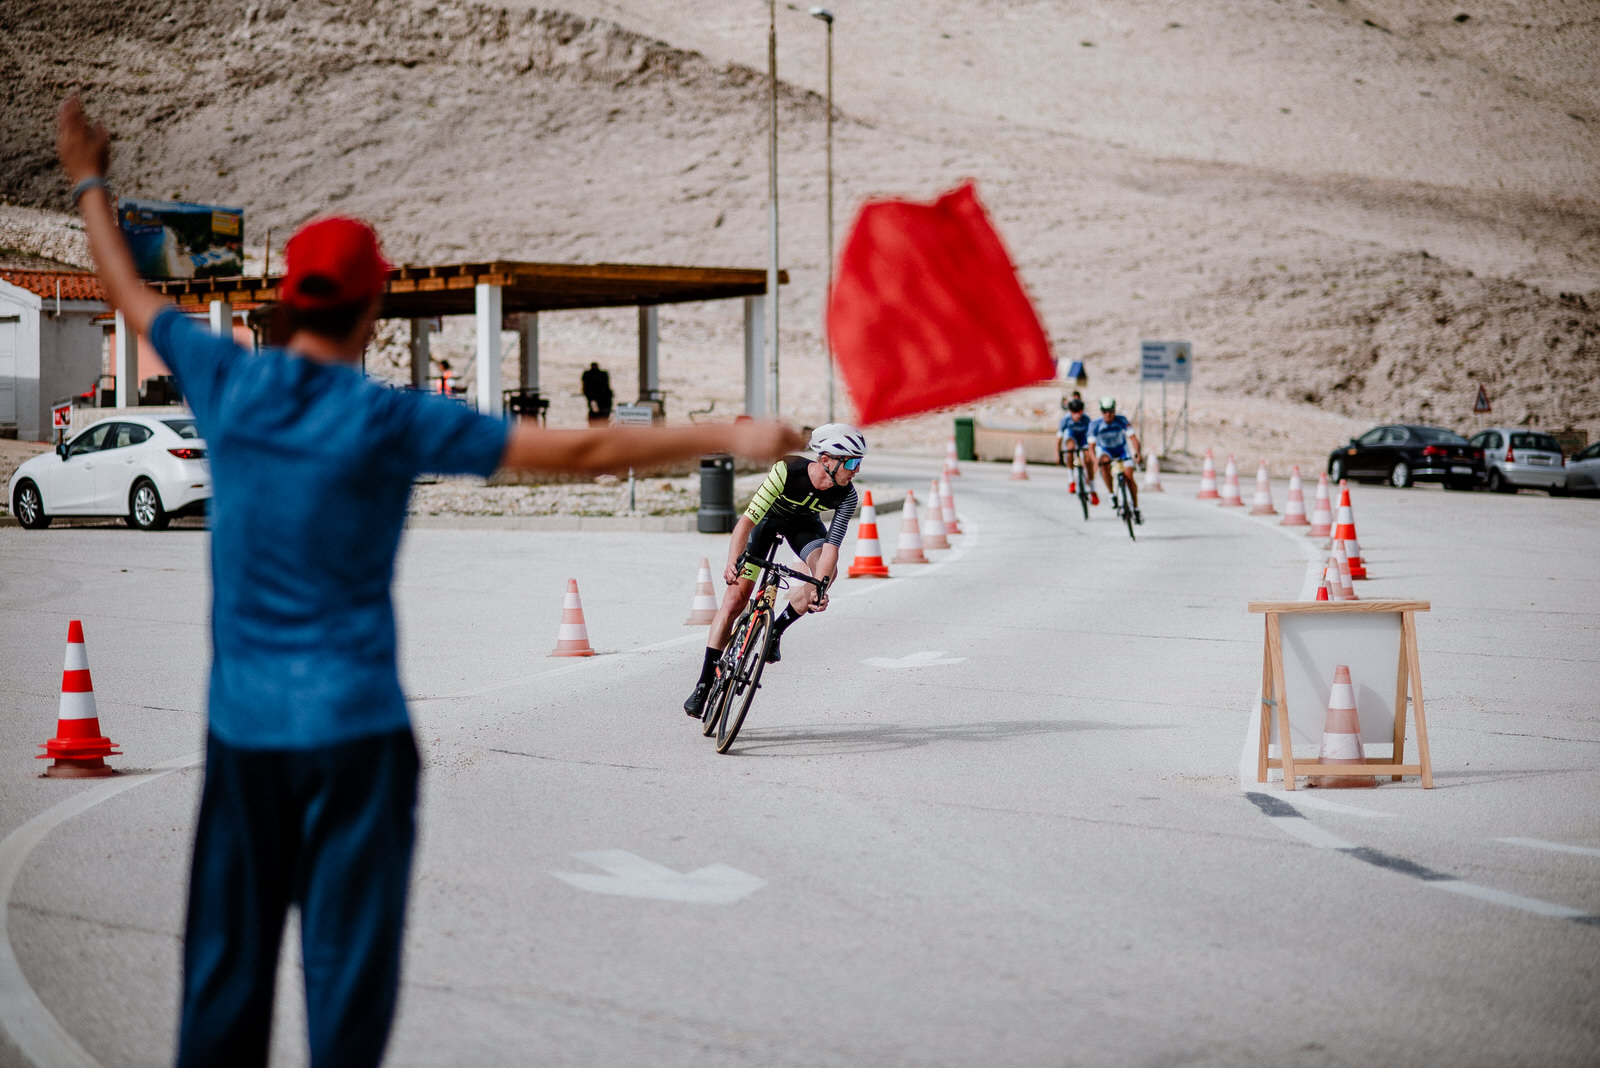 likaclub_Granfondo-Pag-–-Cycling-on-the-Moon_2019-15